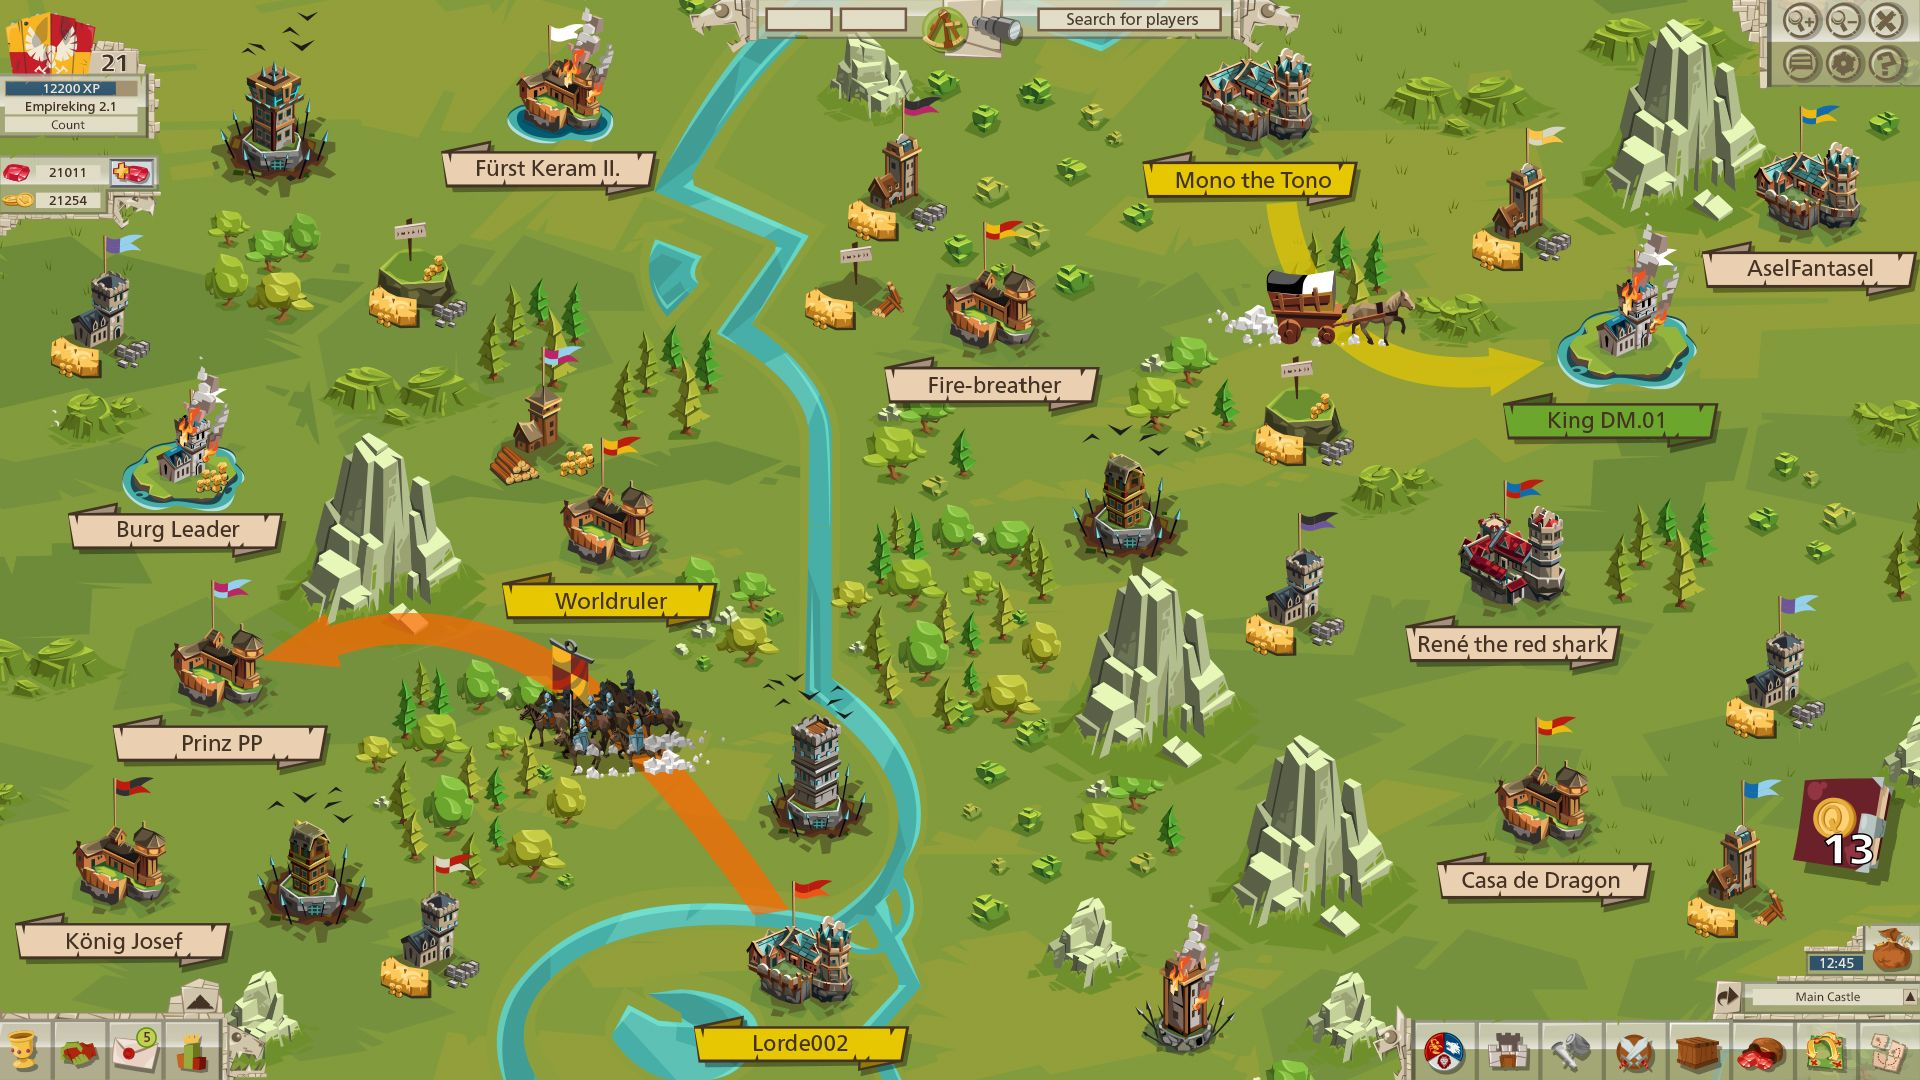 Empire by GoodGame - Free-to-Play MMO Strategy | GameSpace